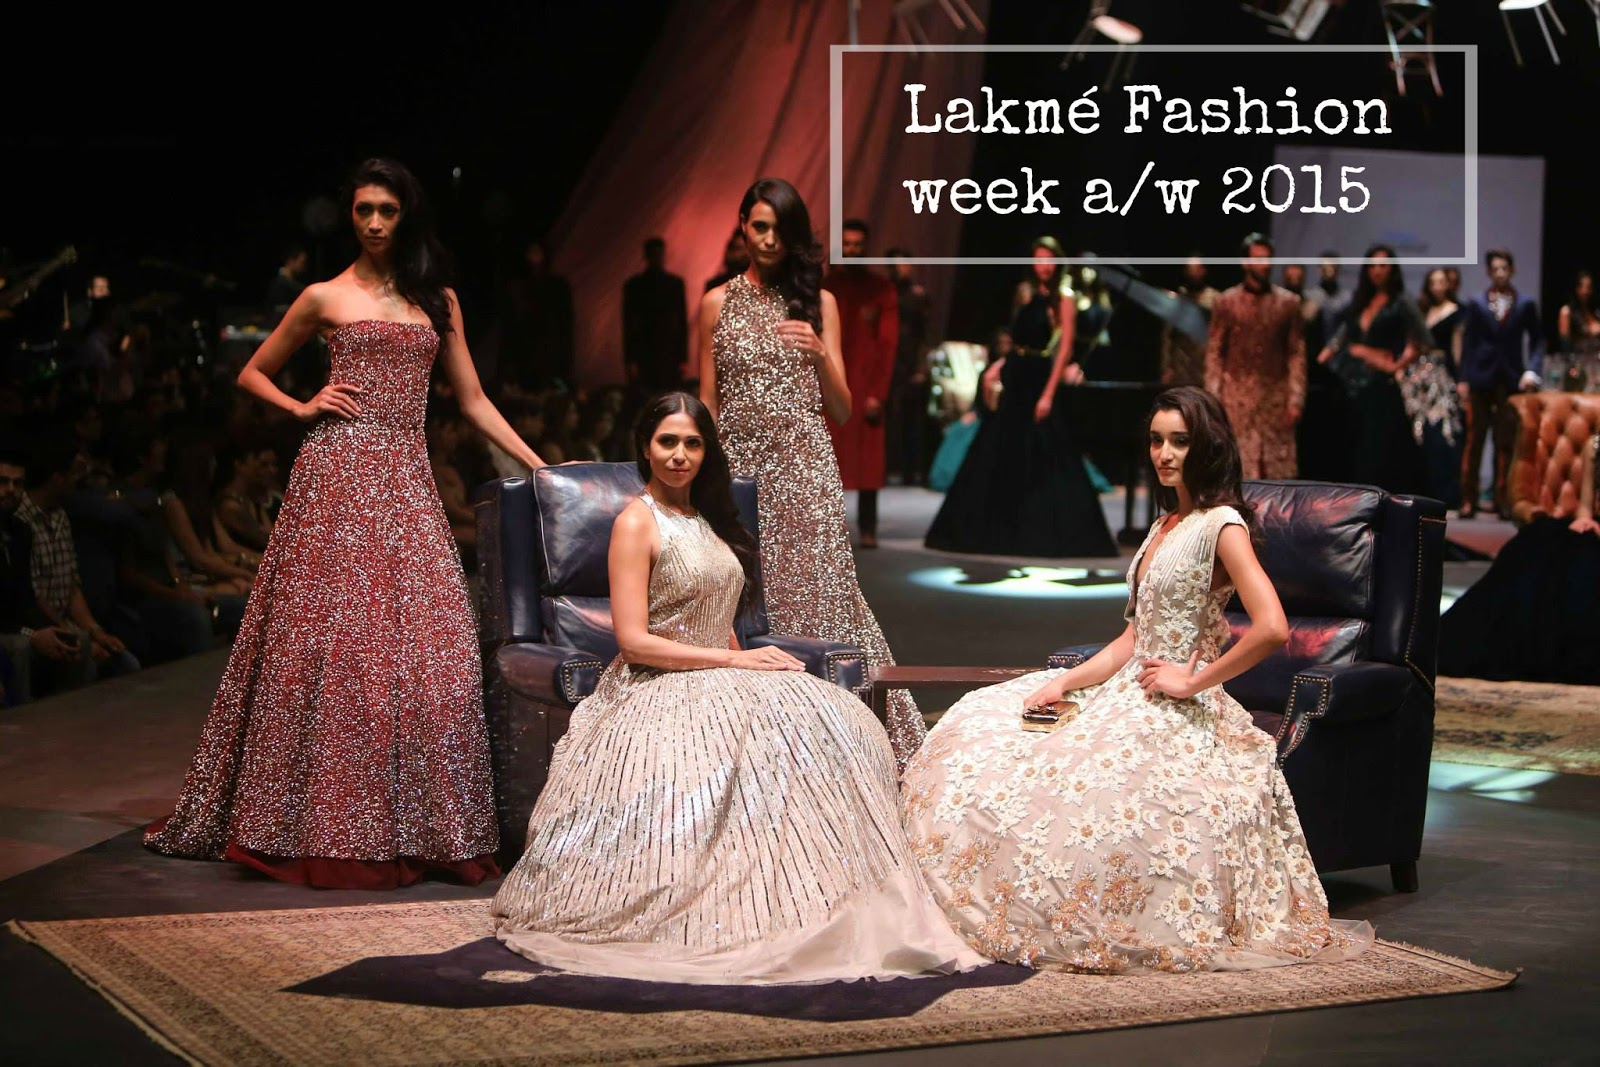 Manish Malhotra Lakmé Fashion week a/w 2015